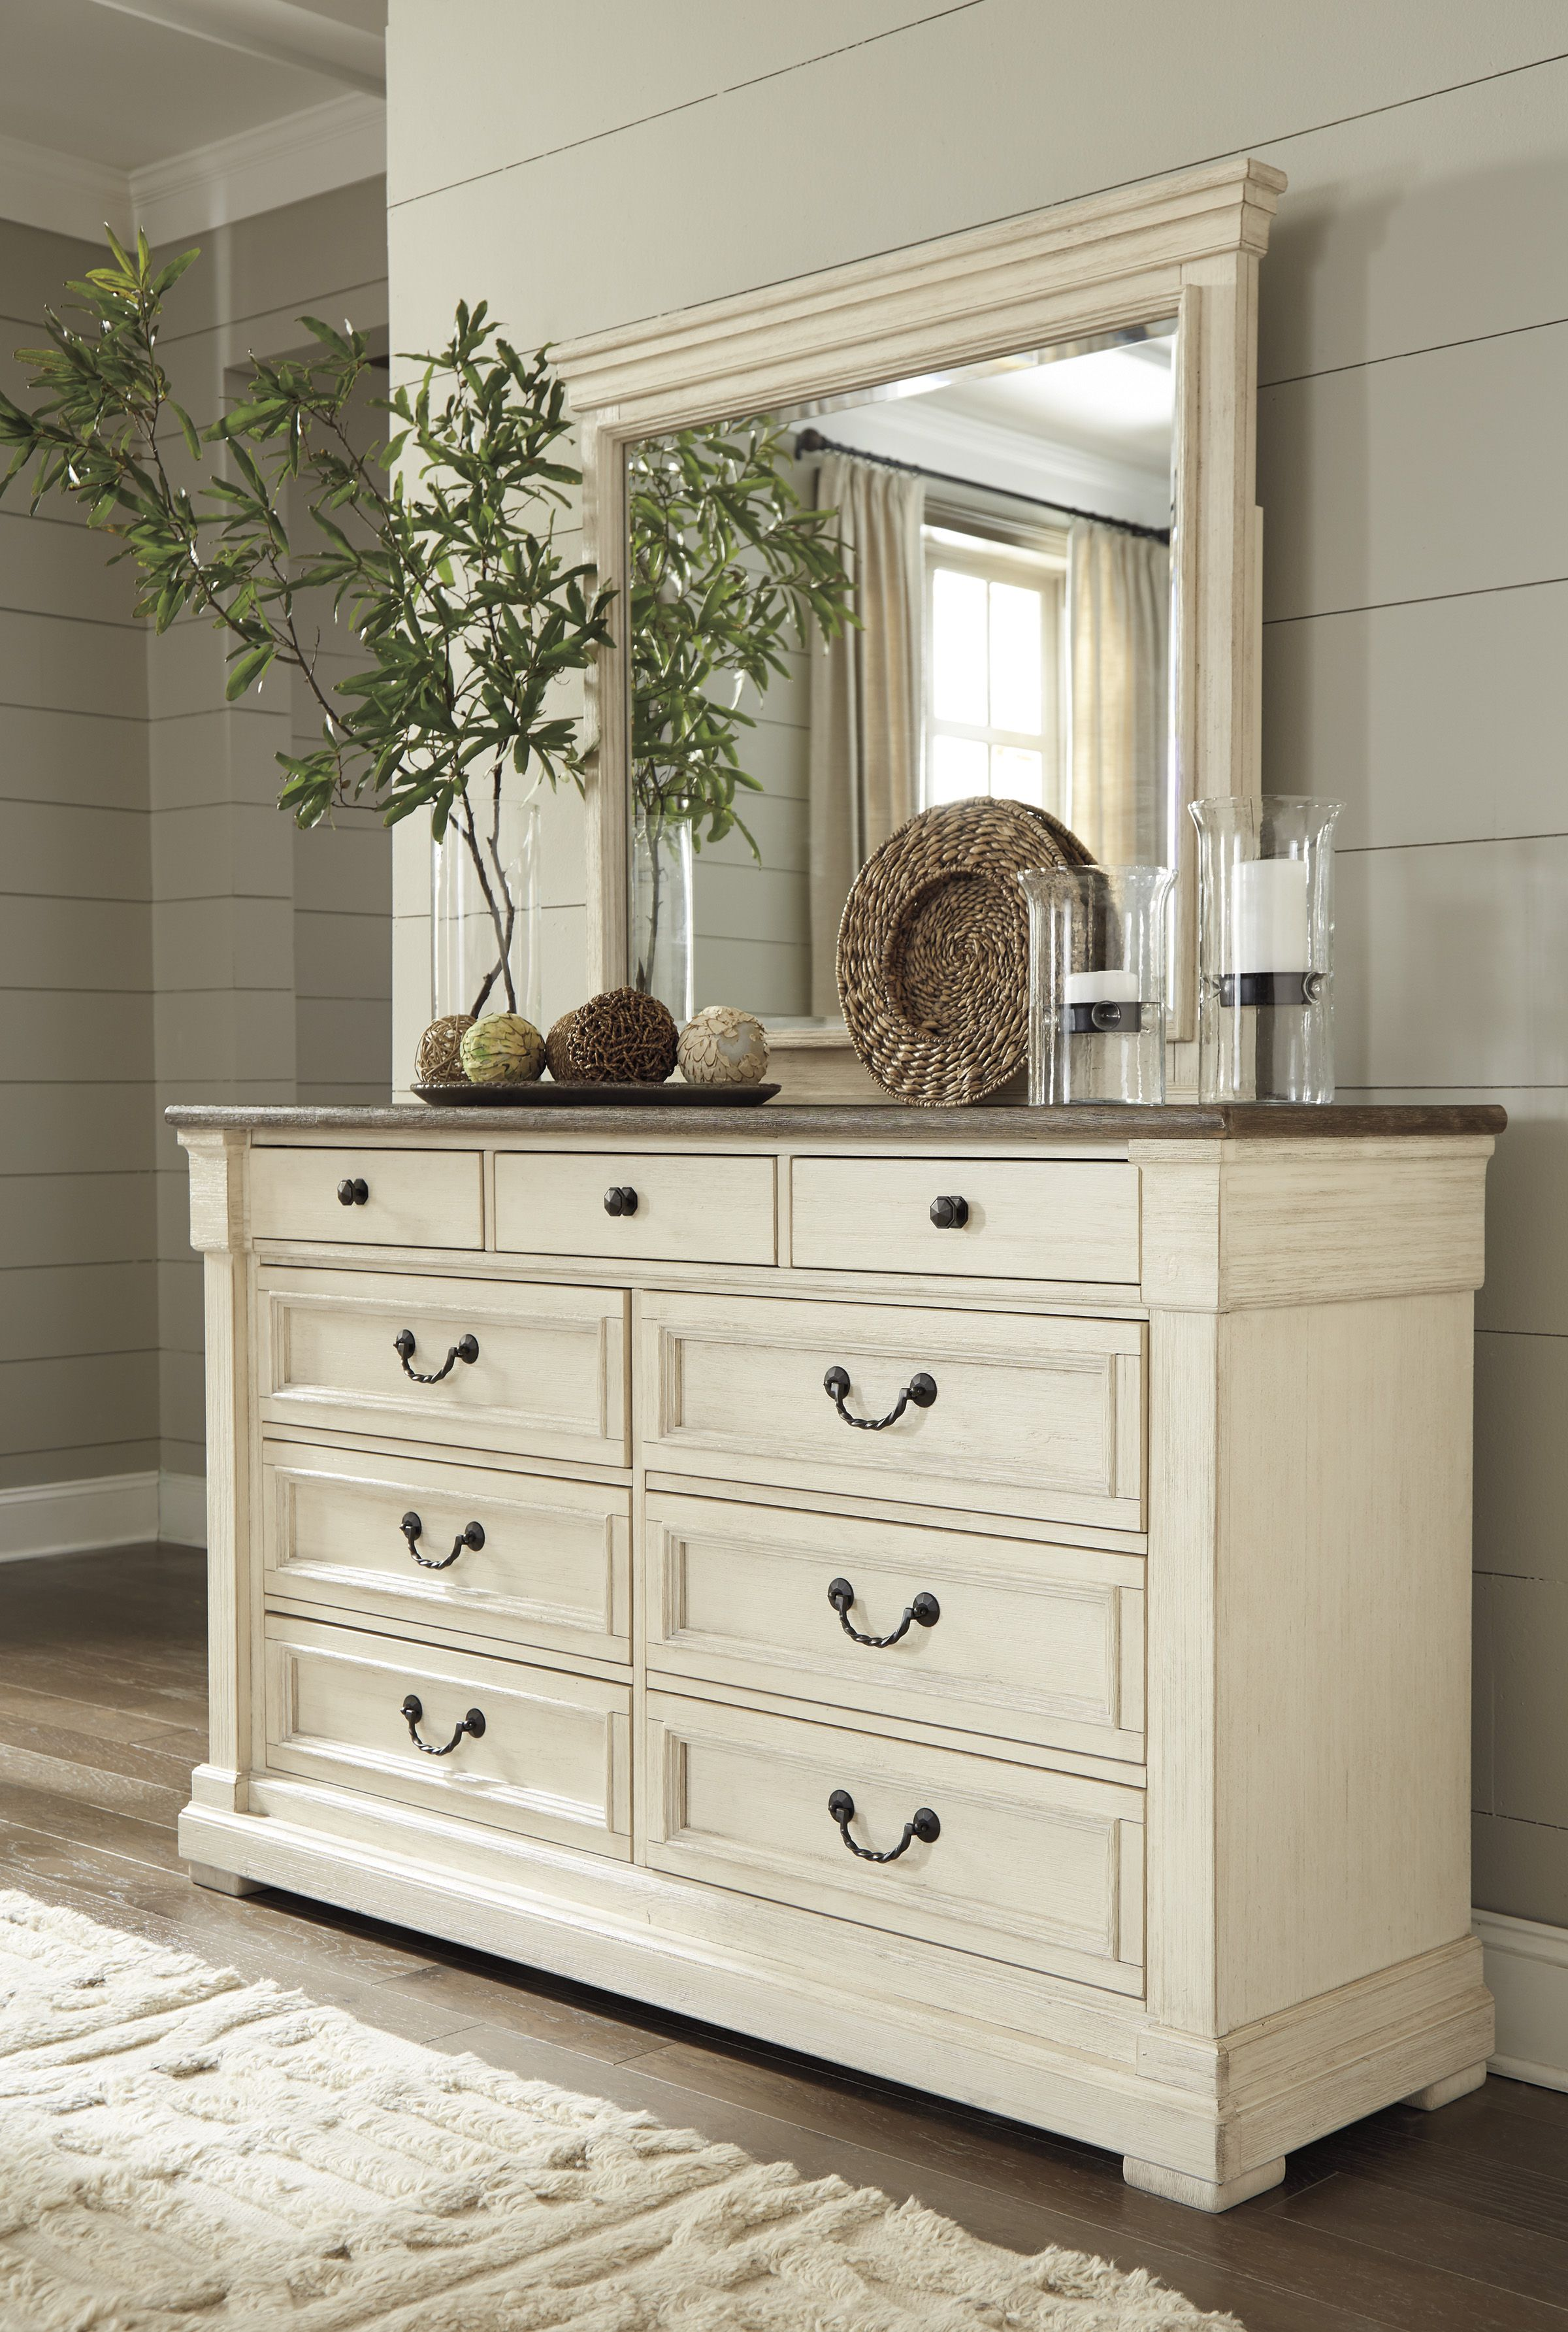 Bolanburg Dresser and Mirror Shabby chic bedrooms